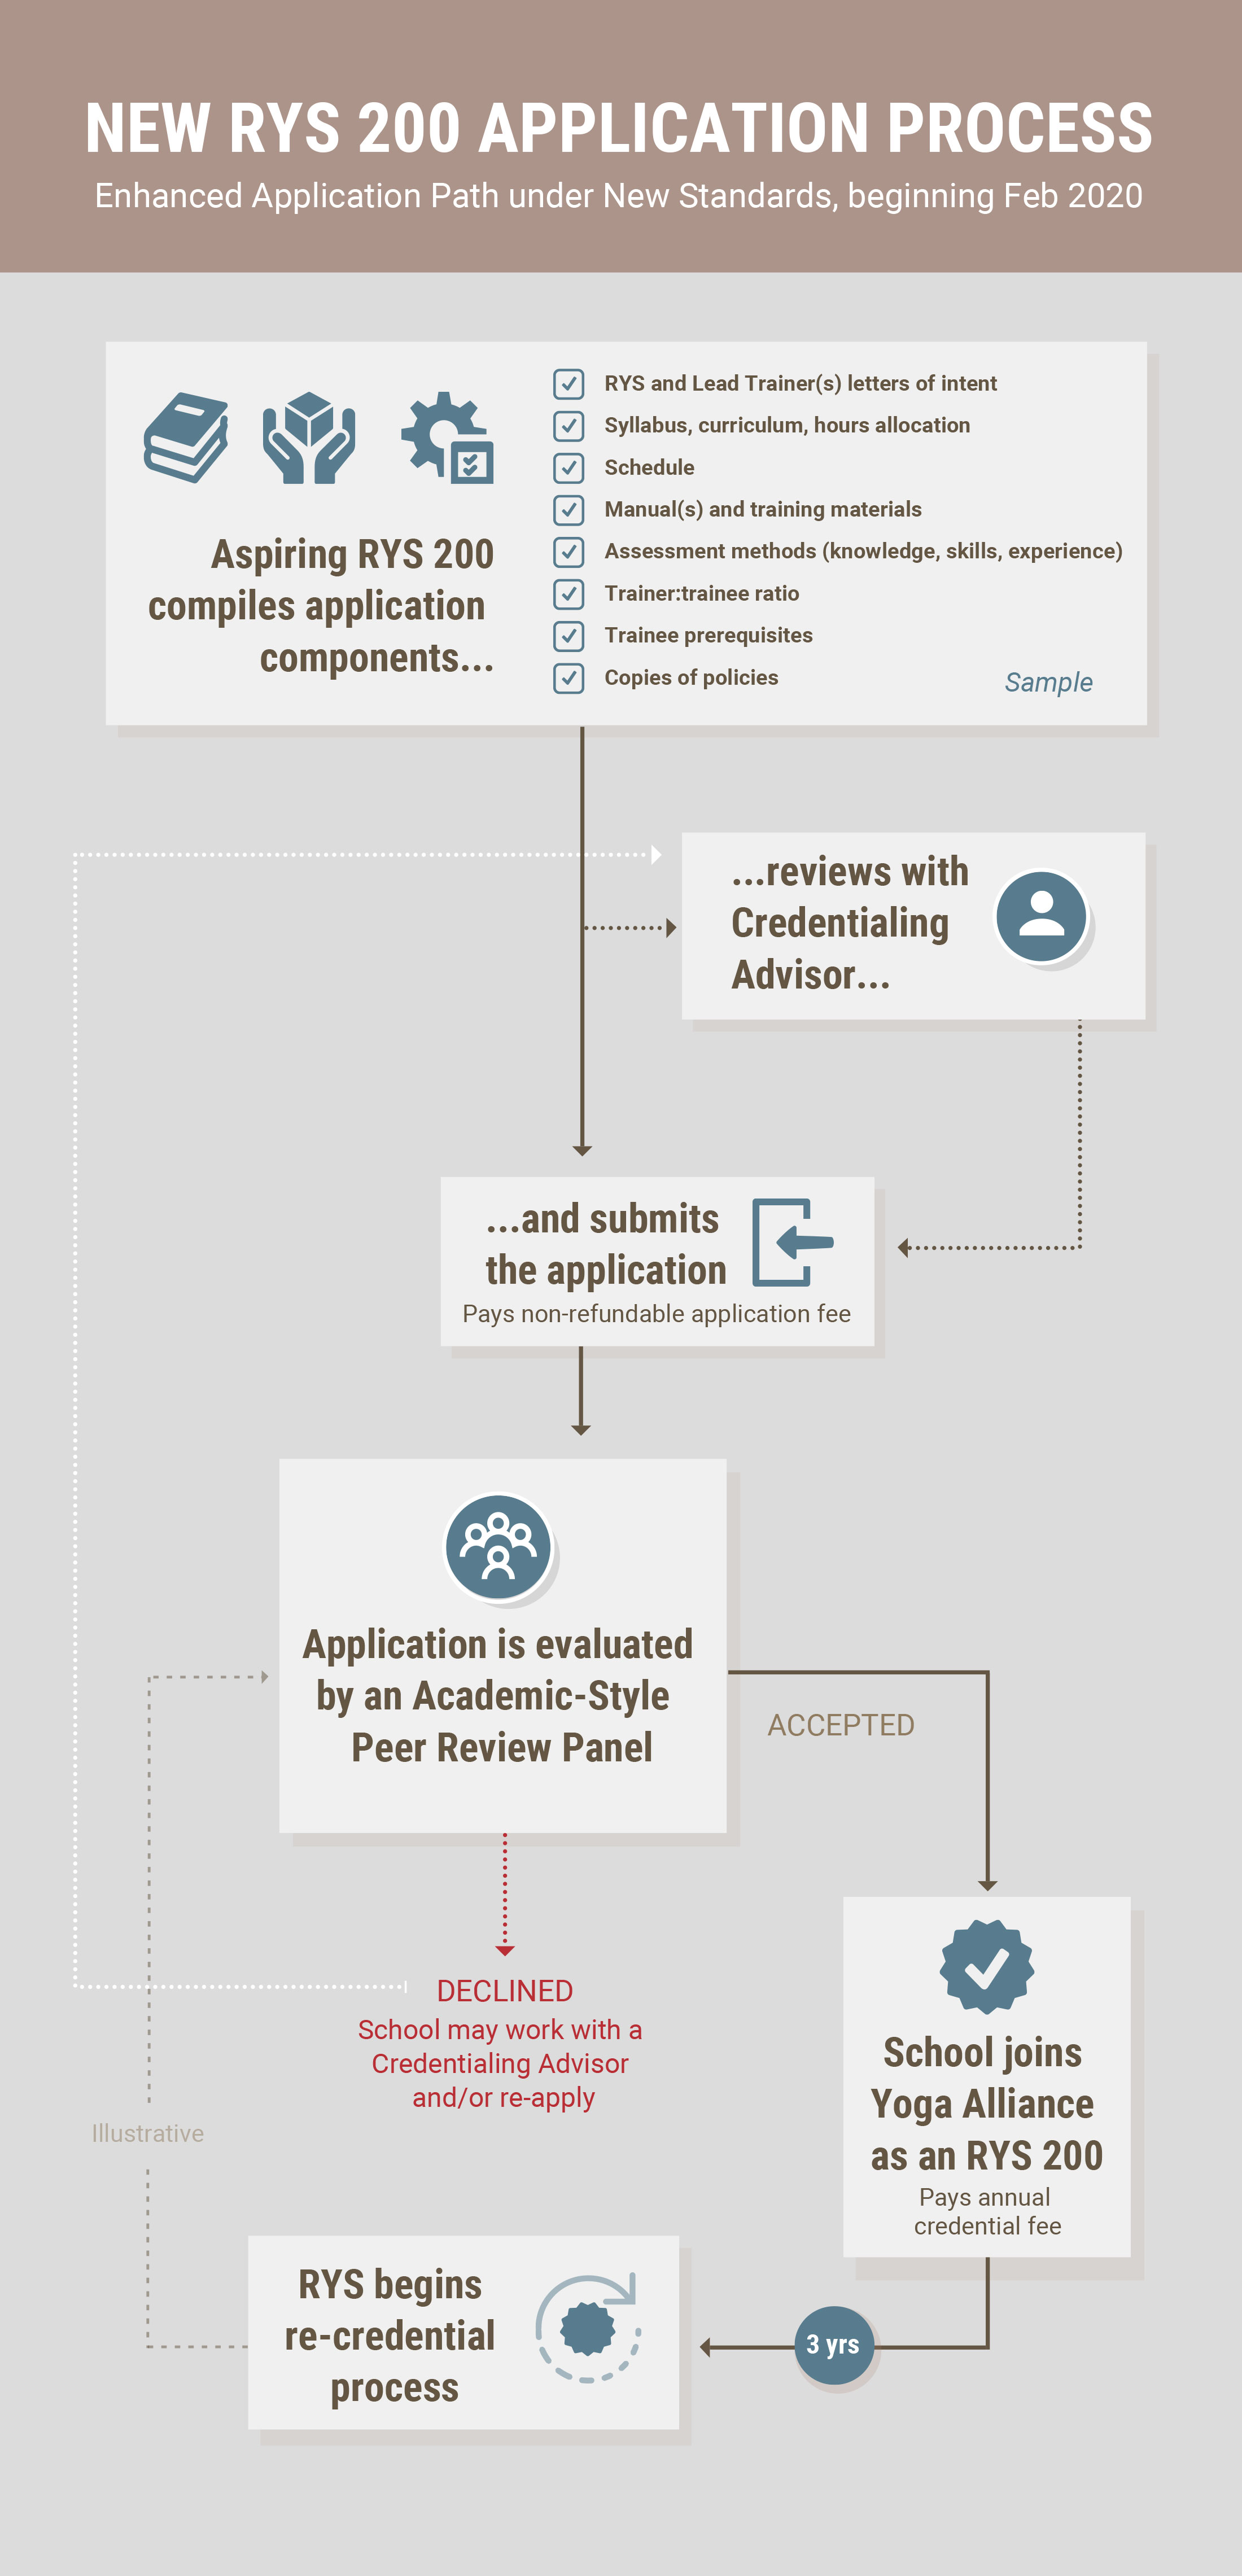 New RYS 200 Application Process